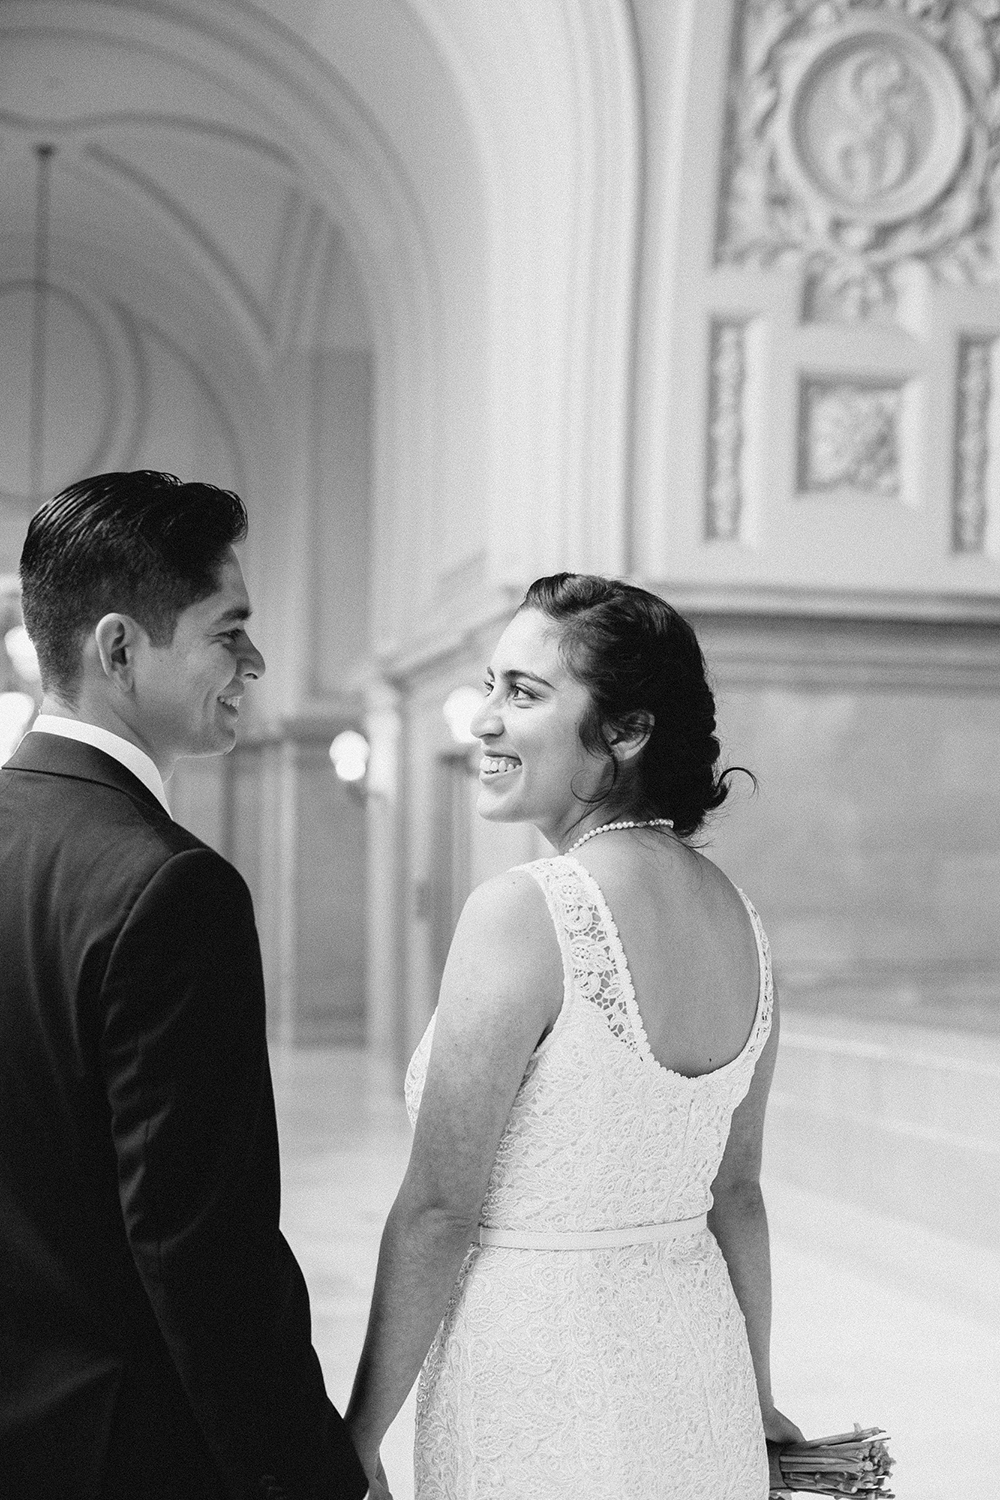 wedding-at-san-francisco-city-hall-14.html